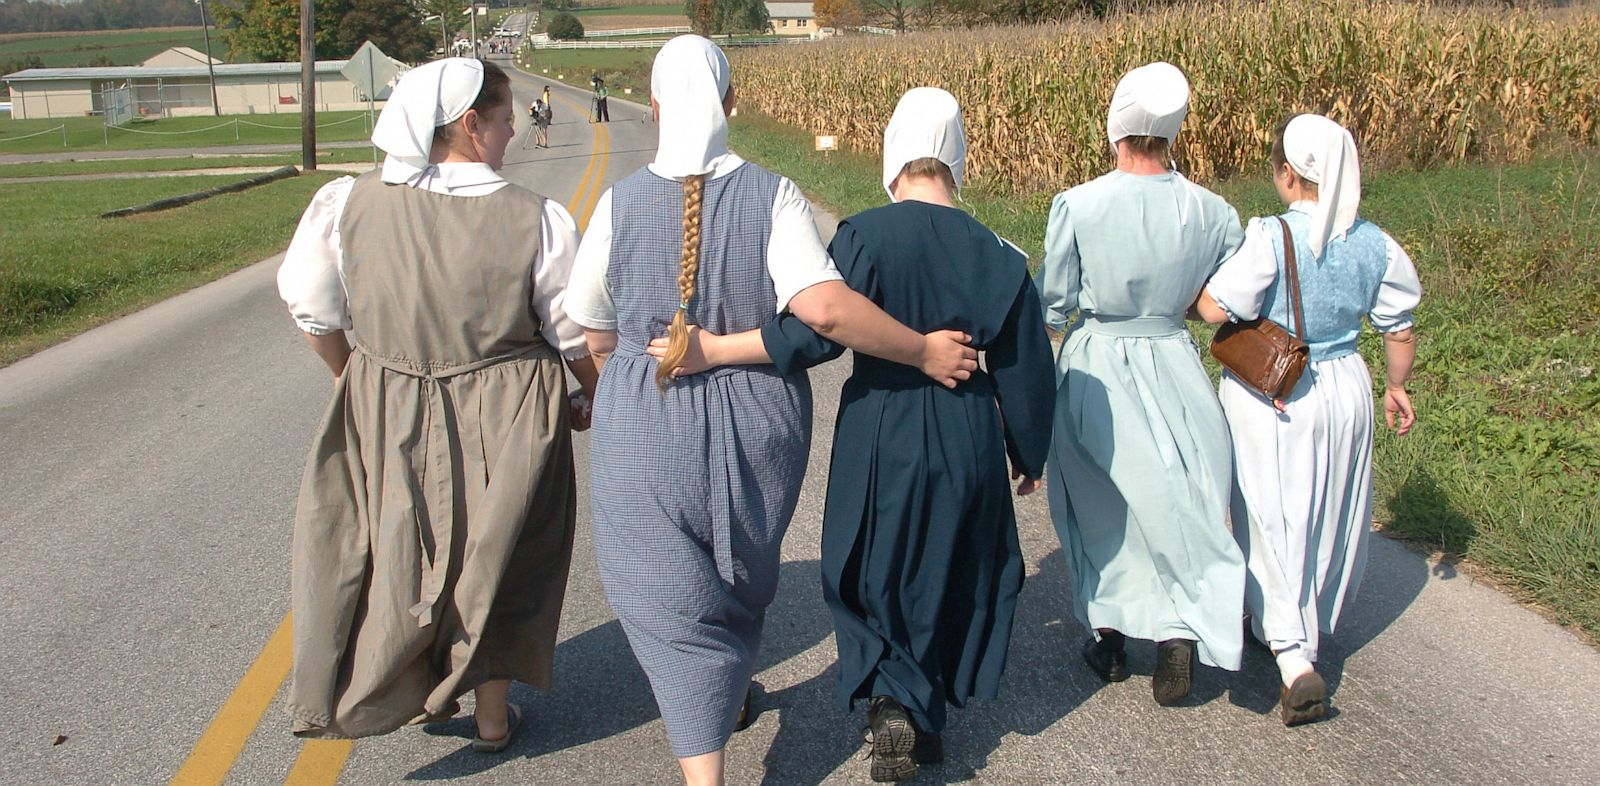 Pastoral Meanderings Wishful Amish Or Lutherans Of The Internet